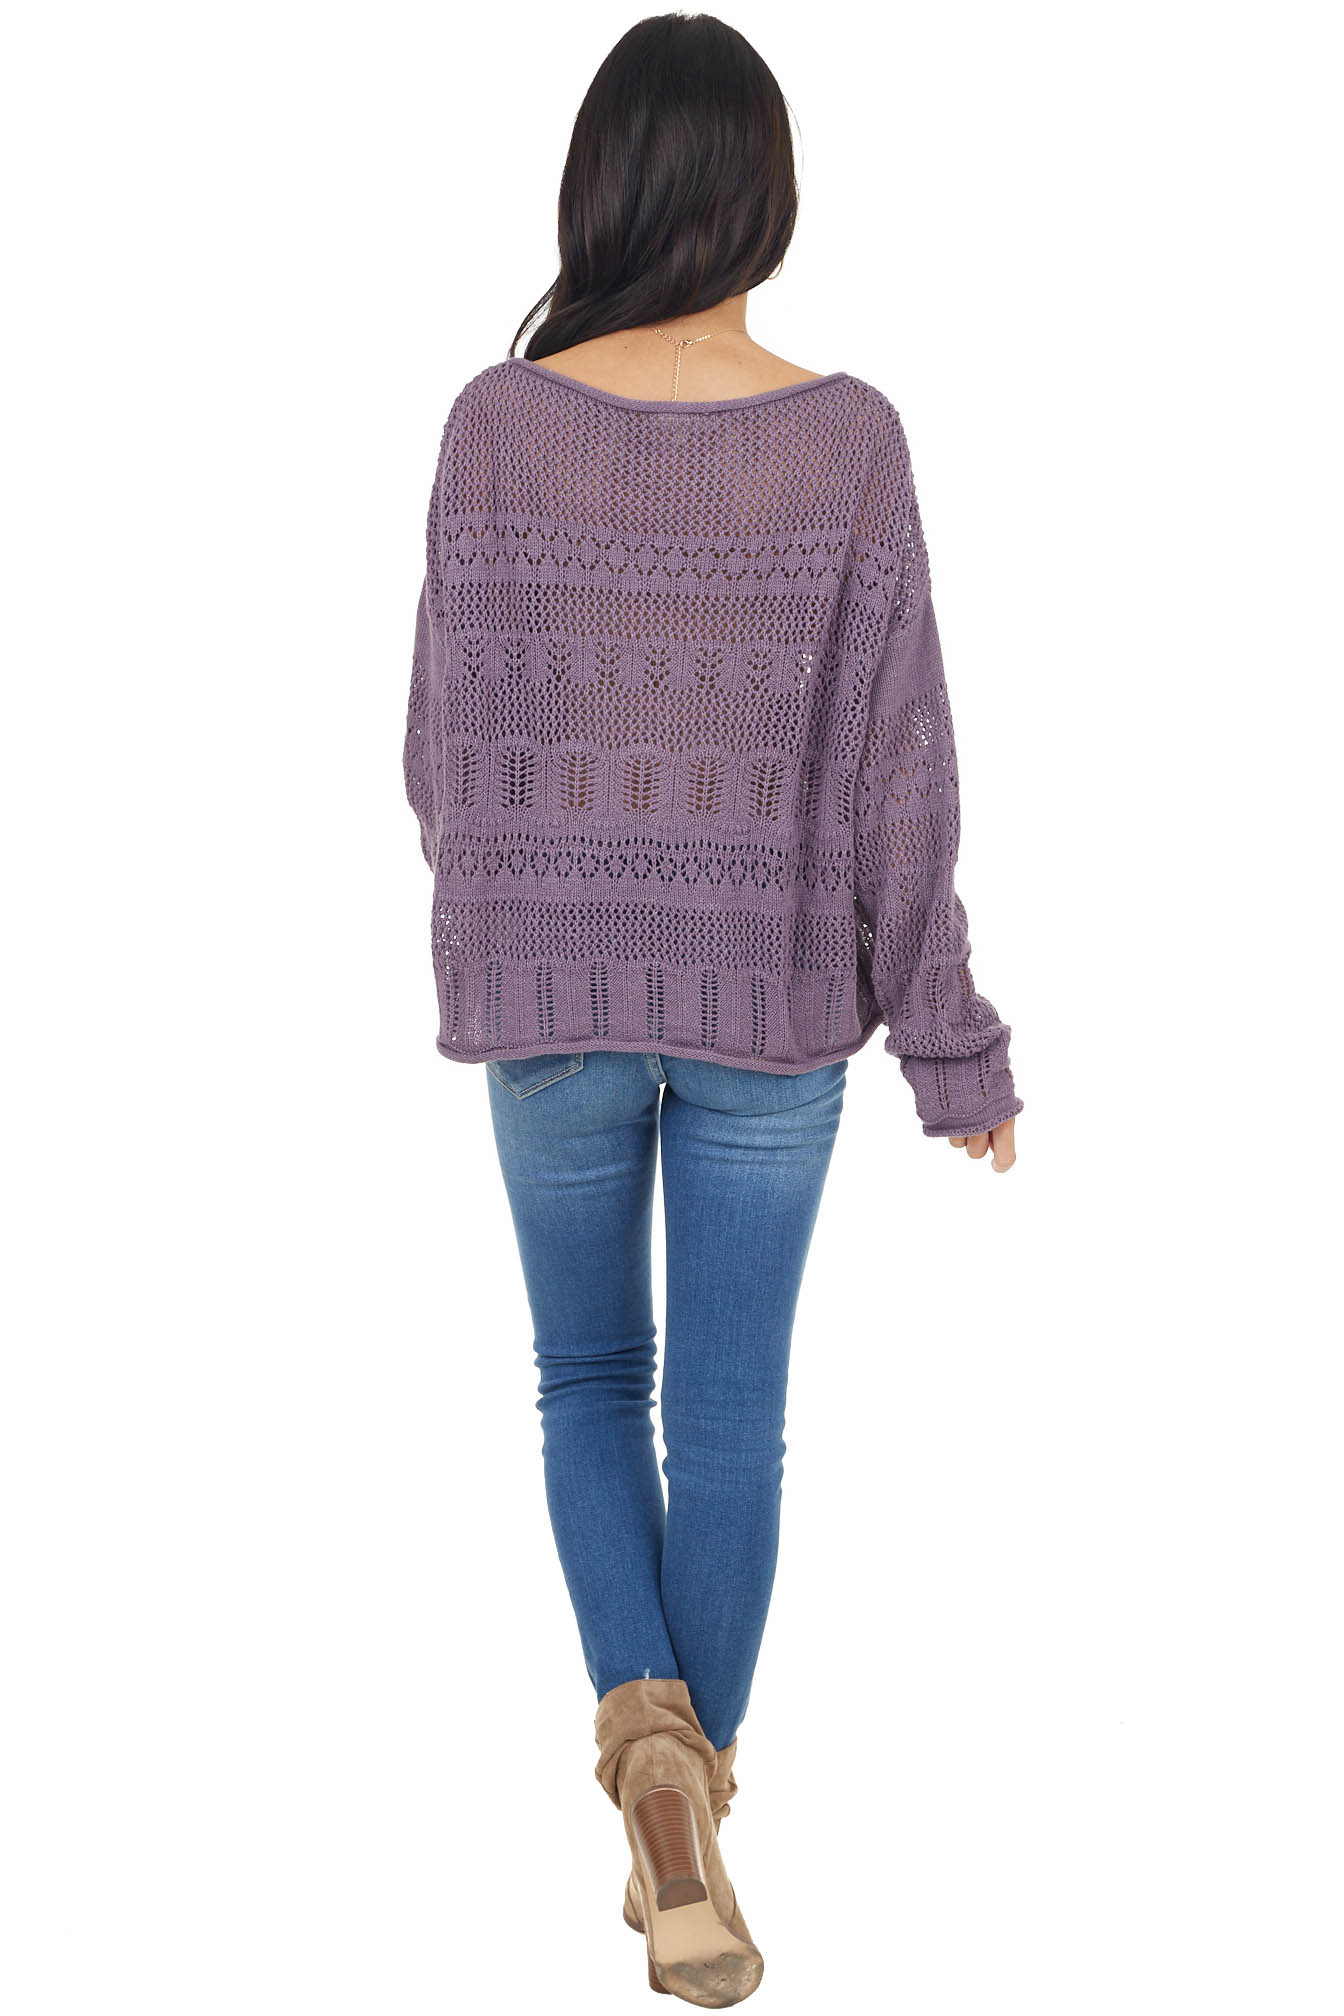 Lavender Crochet Knit Lightweight Sweater with Long Sleeves